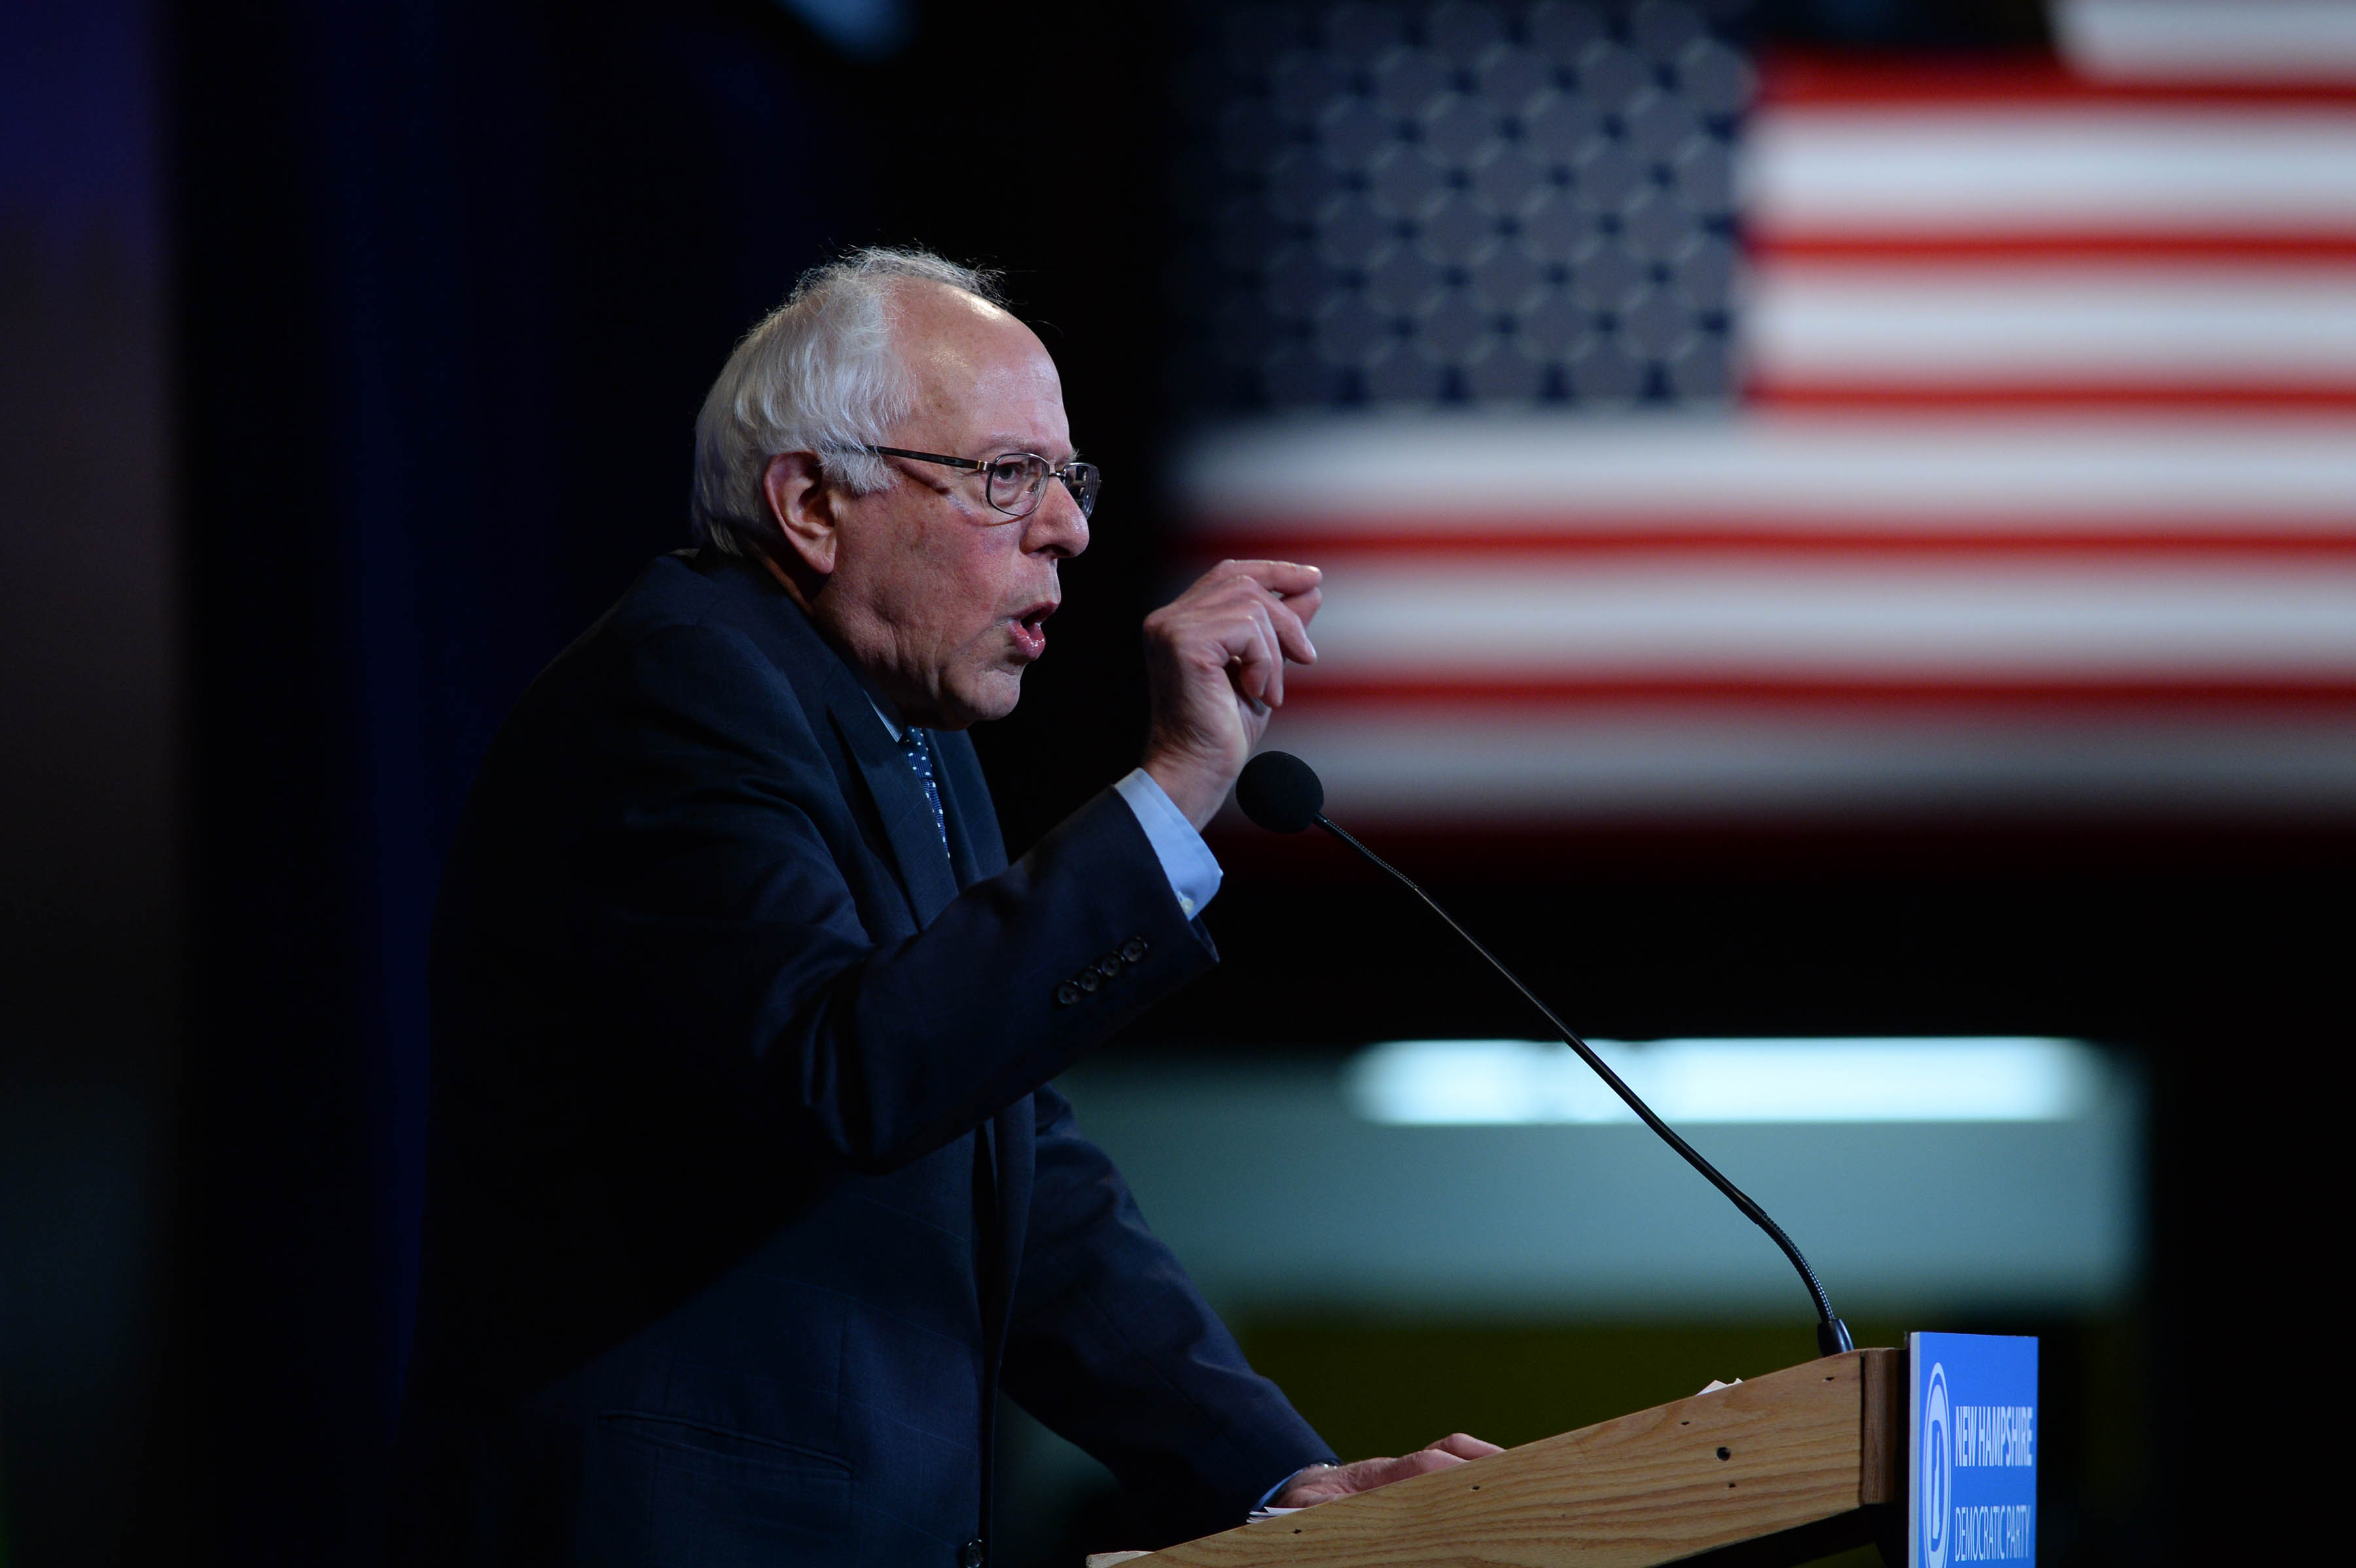 Democratic Presidential candidate Bernie Sanders speaks at the Jefferson Jackson Dinner at the Radisson Hotel November 29, 2015 in Manchester, New Hampshire.